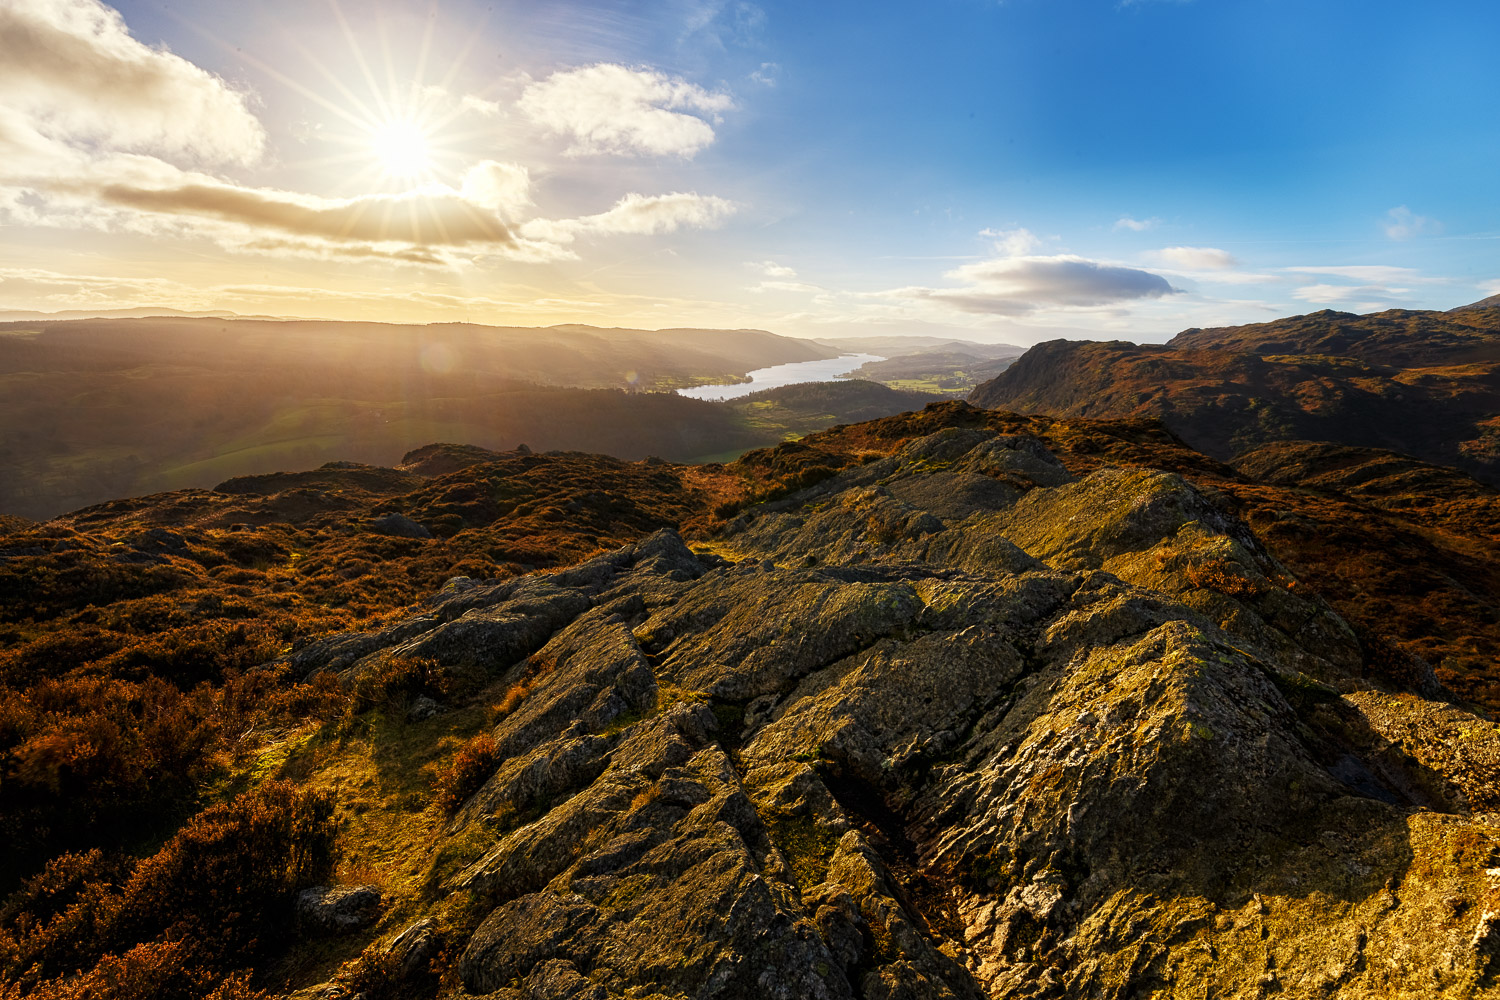 Looking over Coniston Water from the top of Holme Fell.  Canon 6D  , Canon 16-35mm f/4L IS USM @16mm, f/11, ISO 100, 1/1000s, CPL.